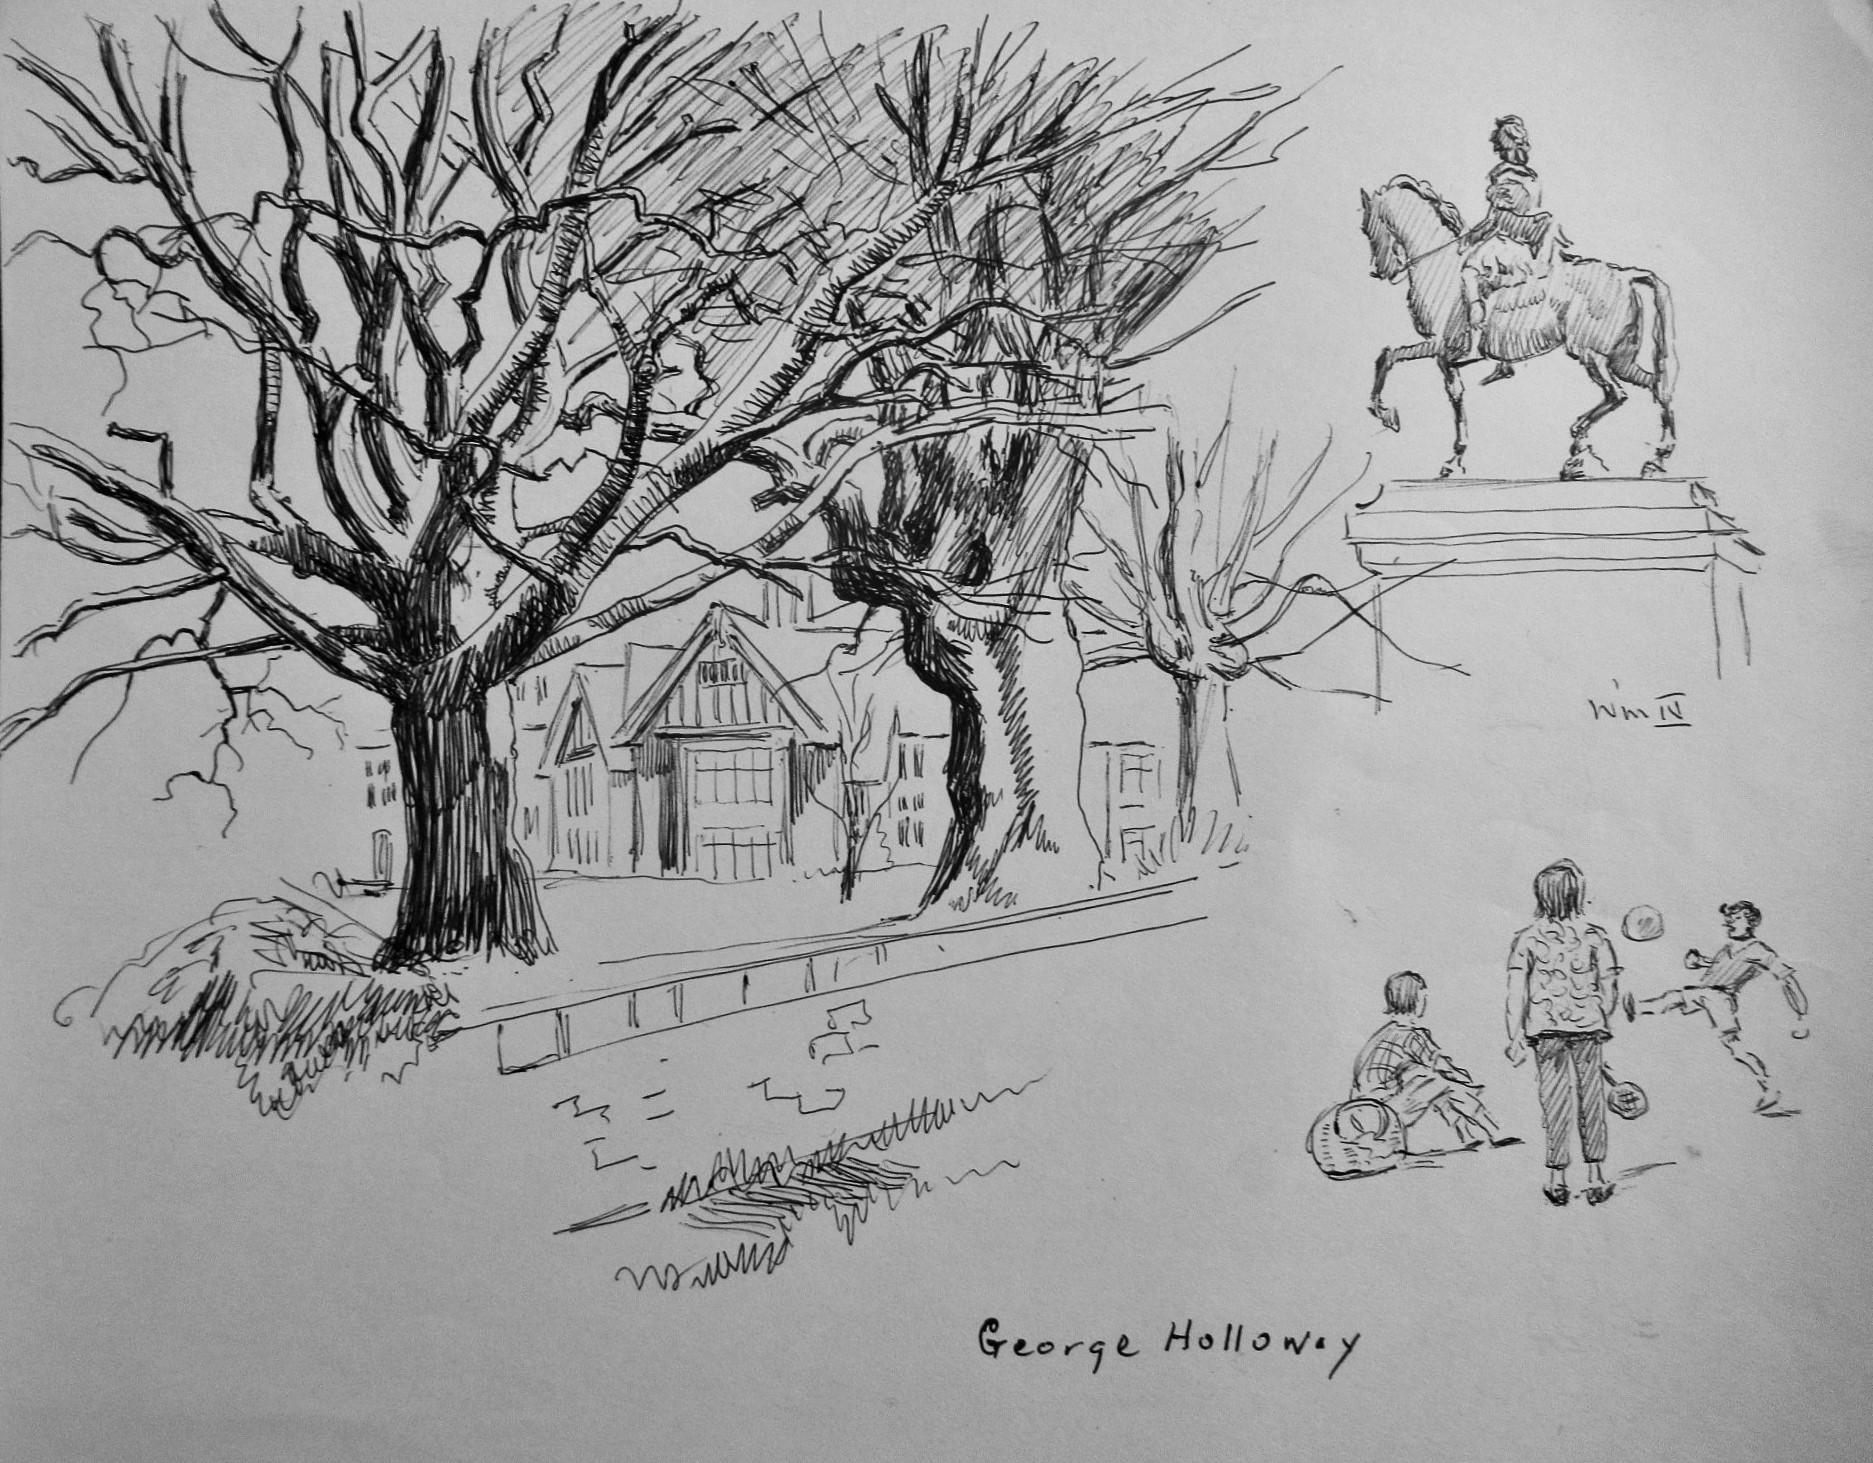 PLAYING_IN_THE_PARK__ORIGINAL_DRAWING_GEORGE_HOLLOWAY_Very_Good